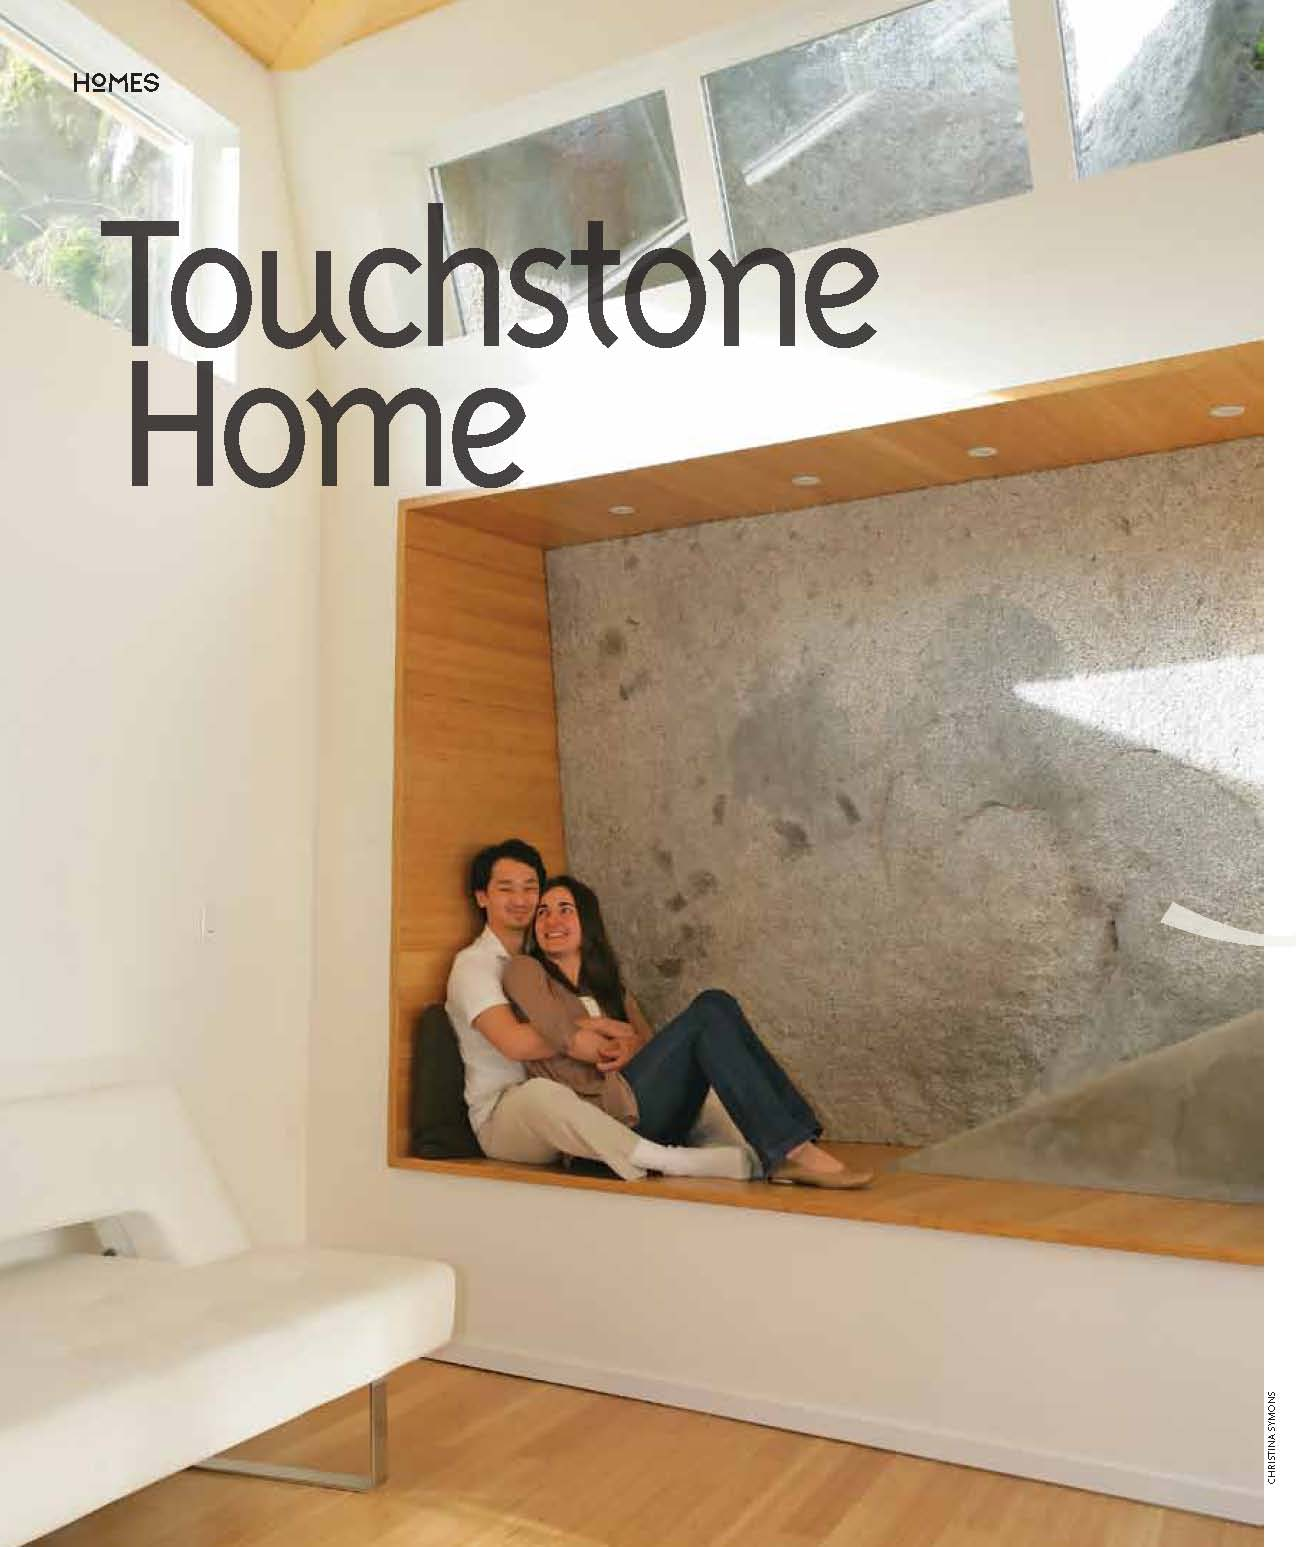 Sandrin leung architecture touchstone home for Touchstone homes